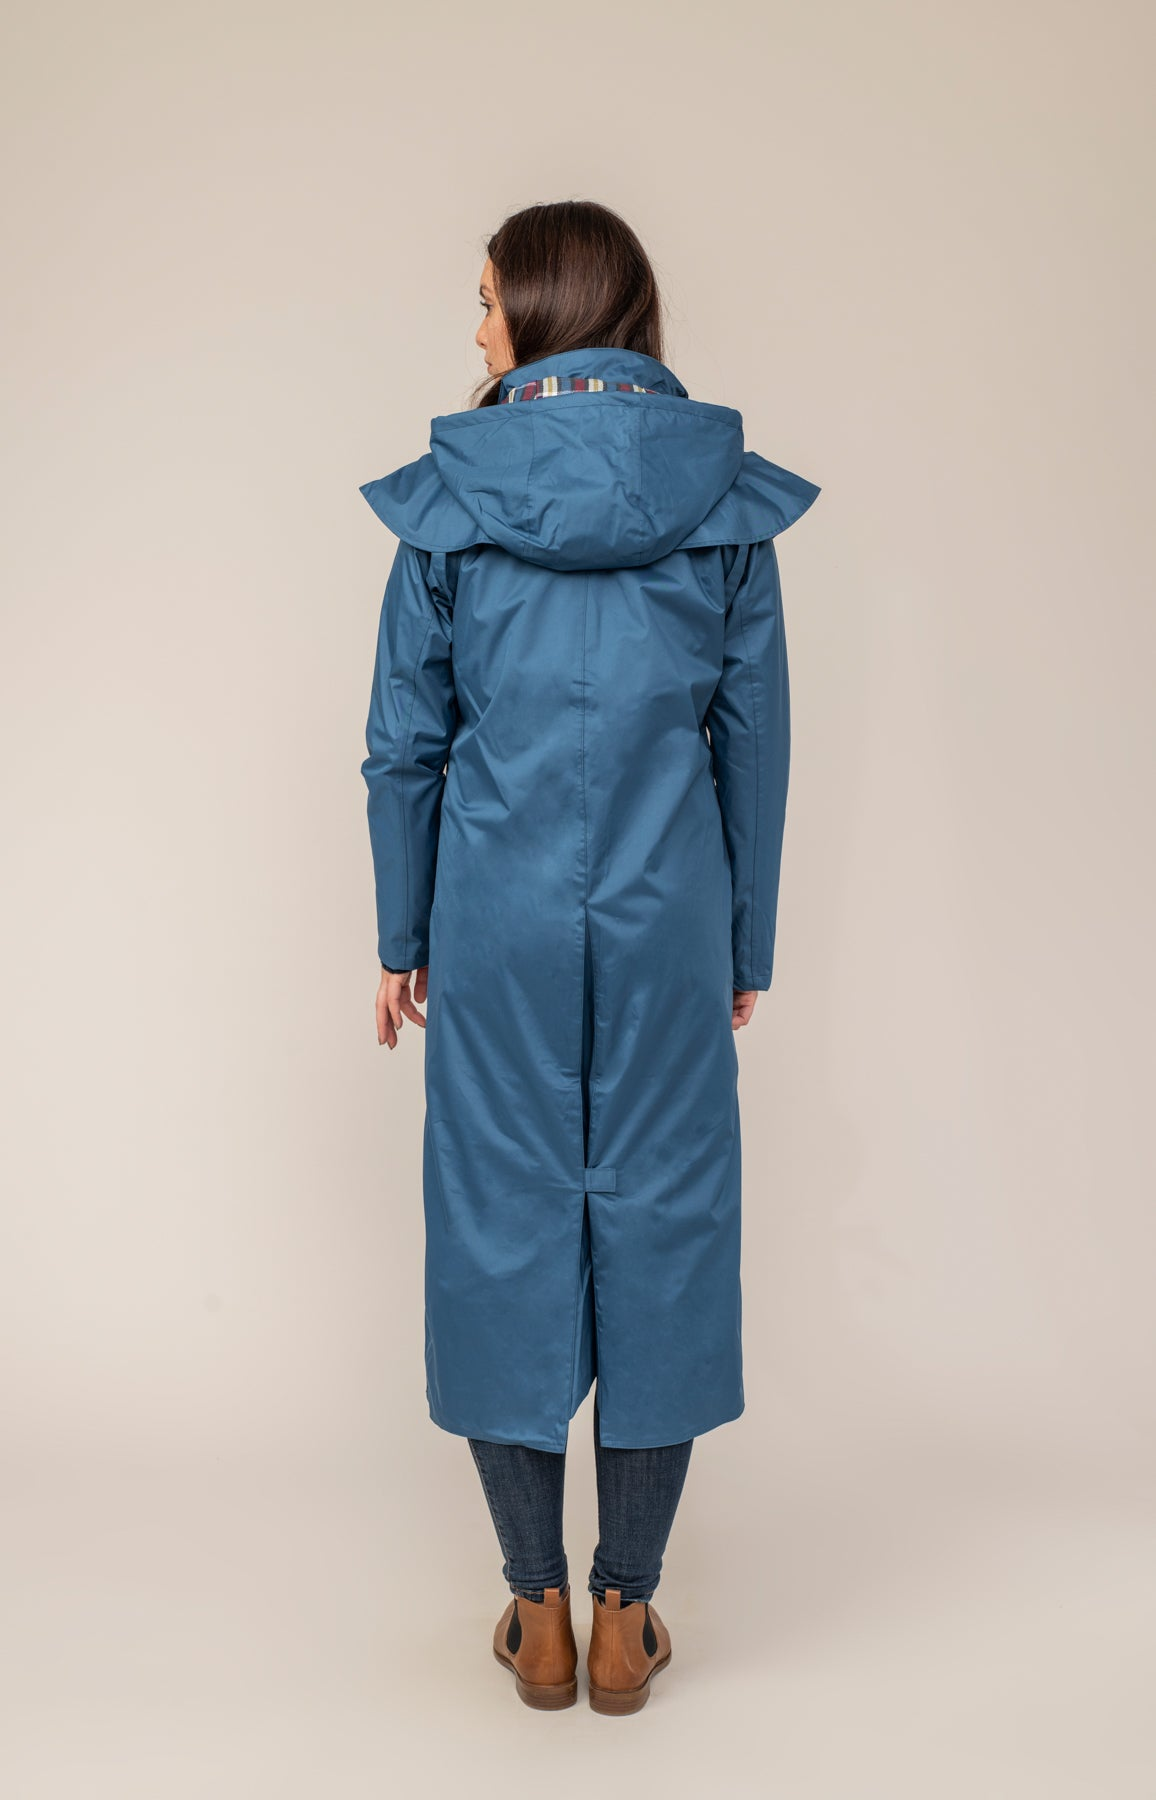 Outback Full Length Waterproof Raincoat - Deep Sea